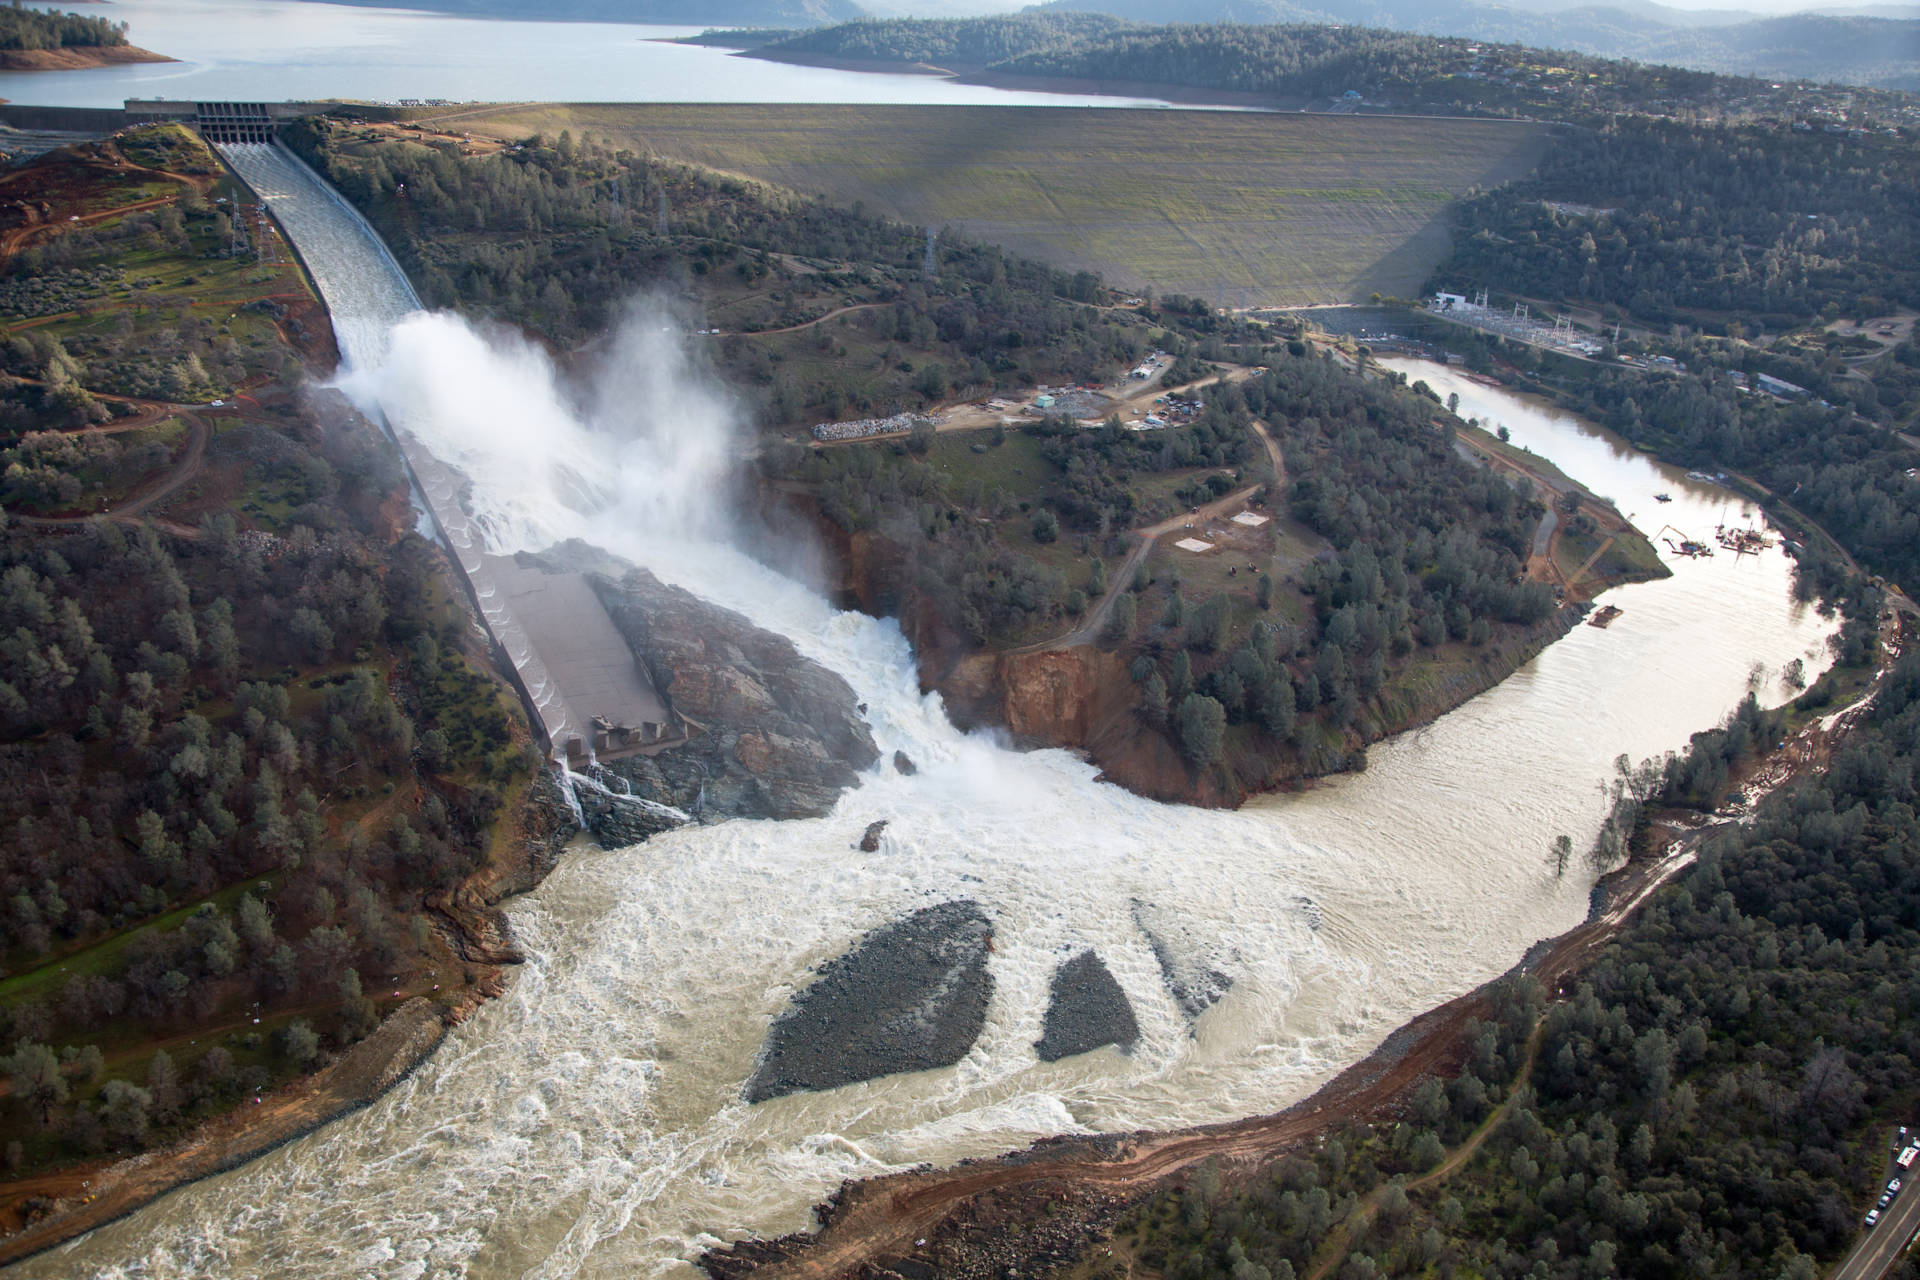 An aerial view of the damaged Oroville Dam spillway, Feb. 27, 2017.  Dale Kolke / California Department of Water Resources